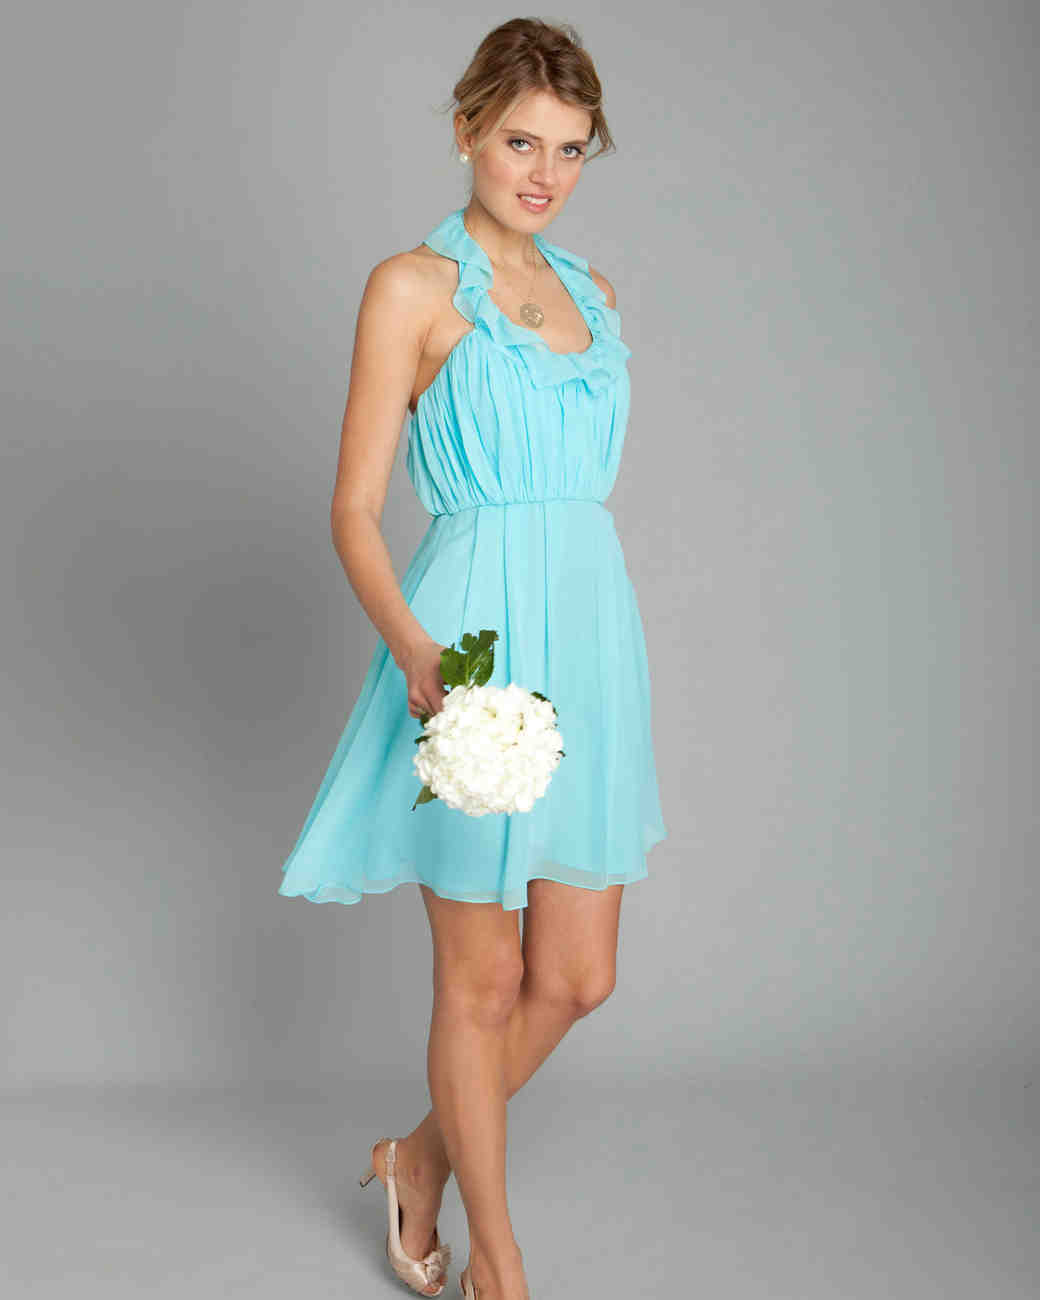 Bridesmaid dresses for beach weddings martha stewart weddings coren moore ombrellifo Images